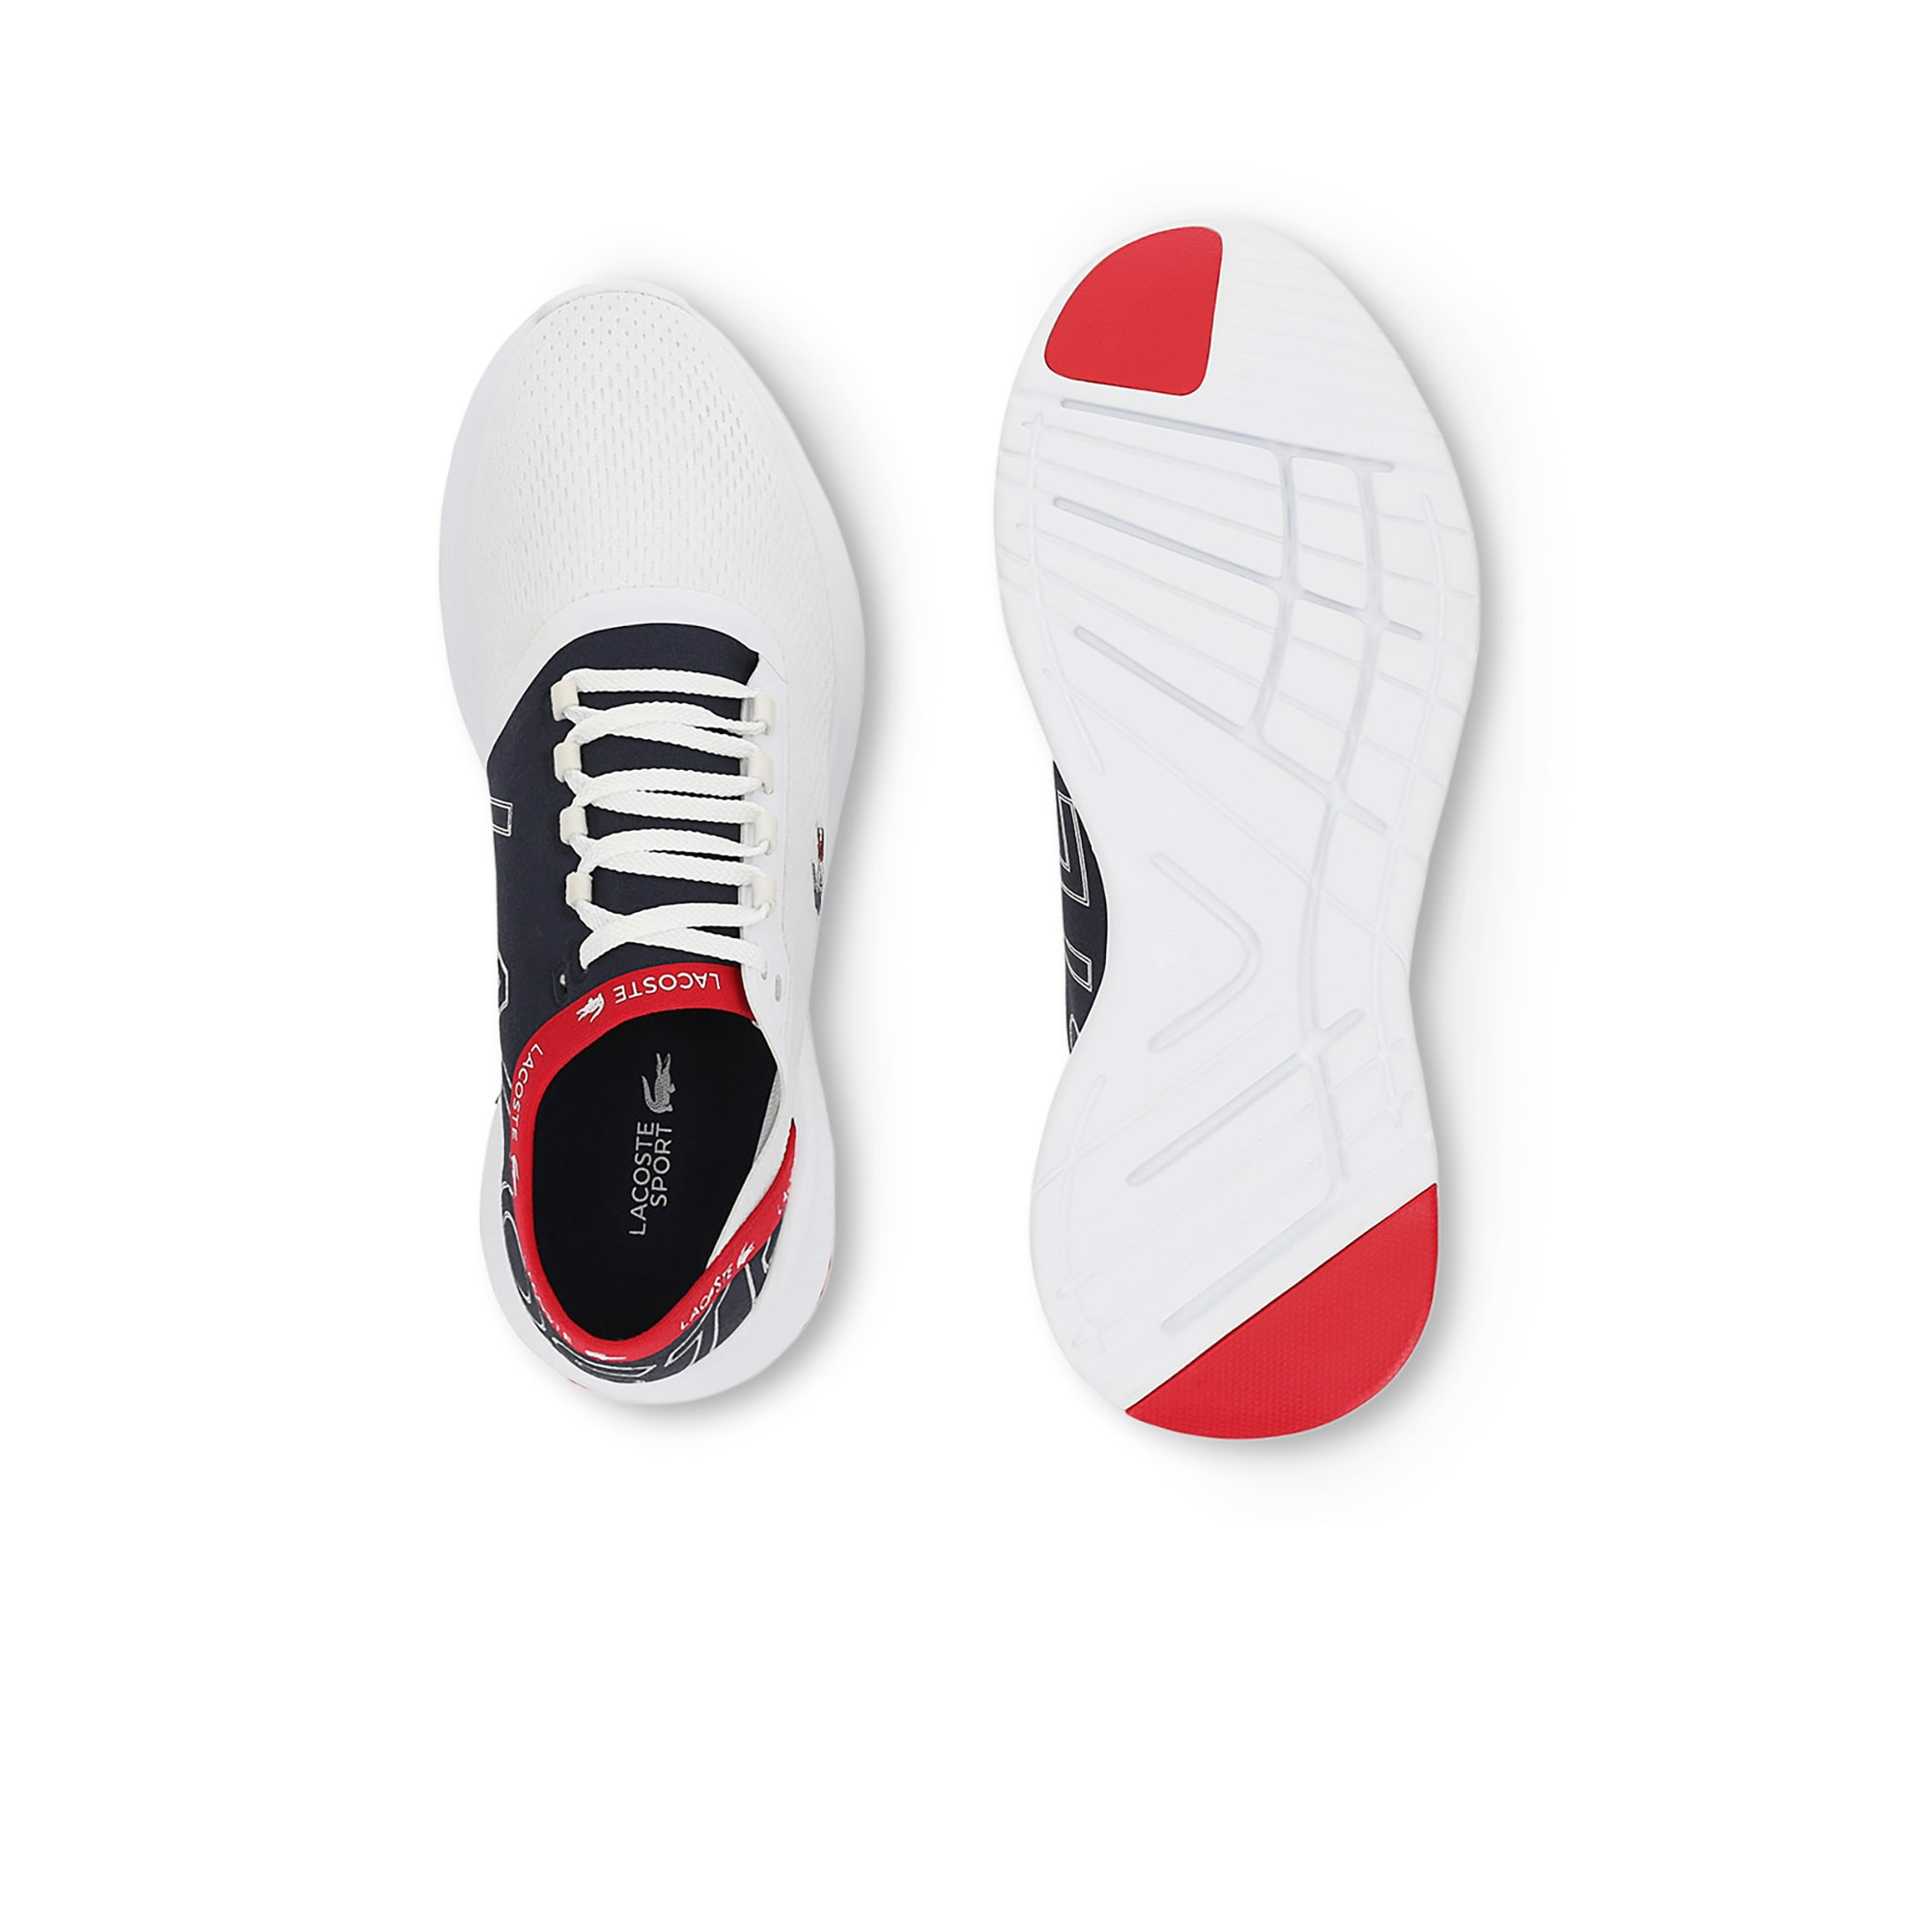 Men's LT Fit Sneakers with Tricolor